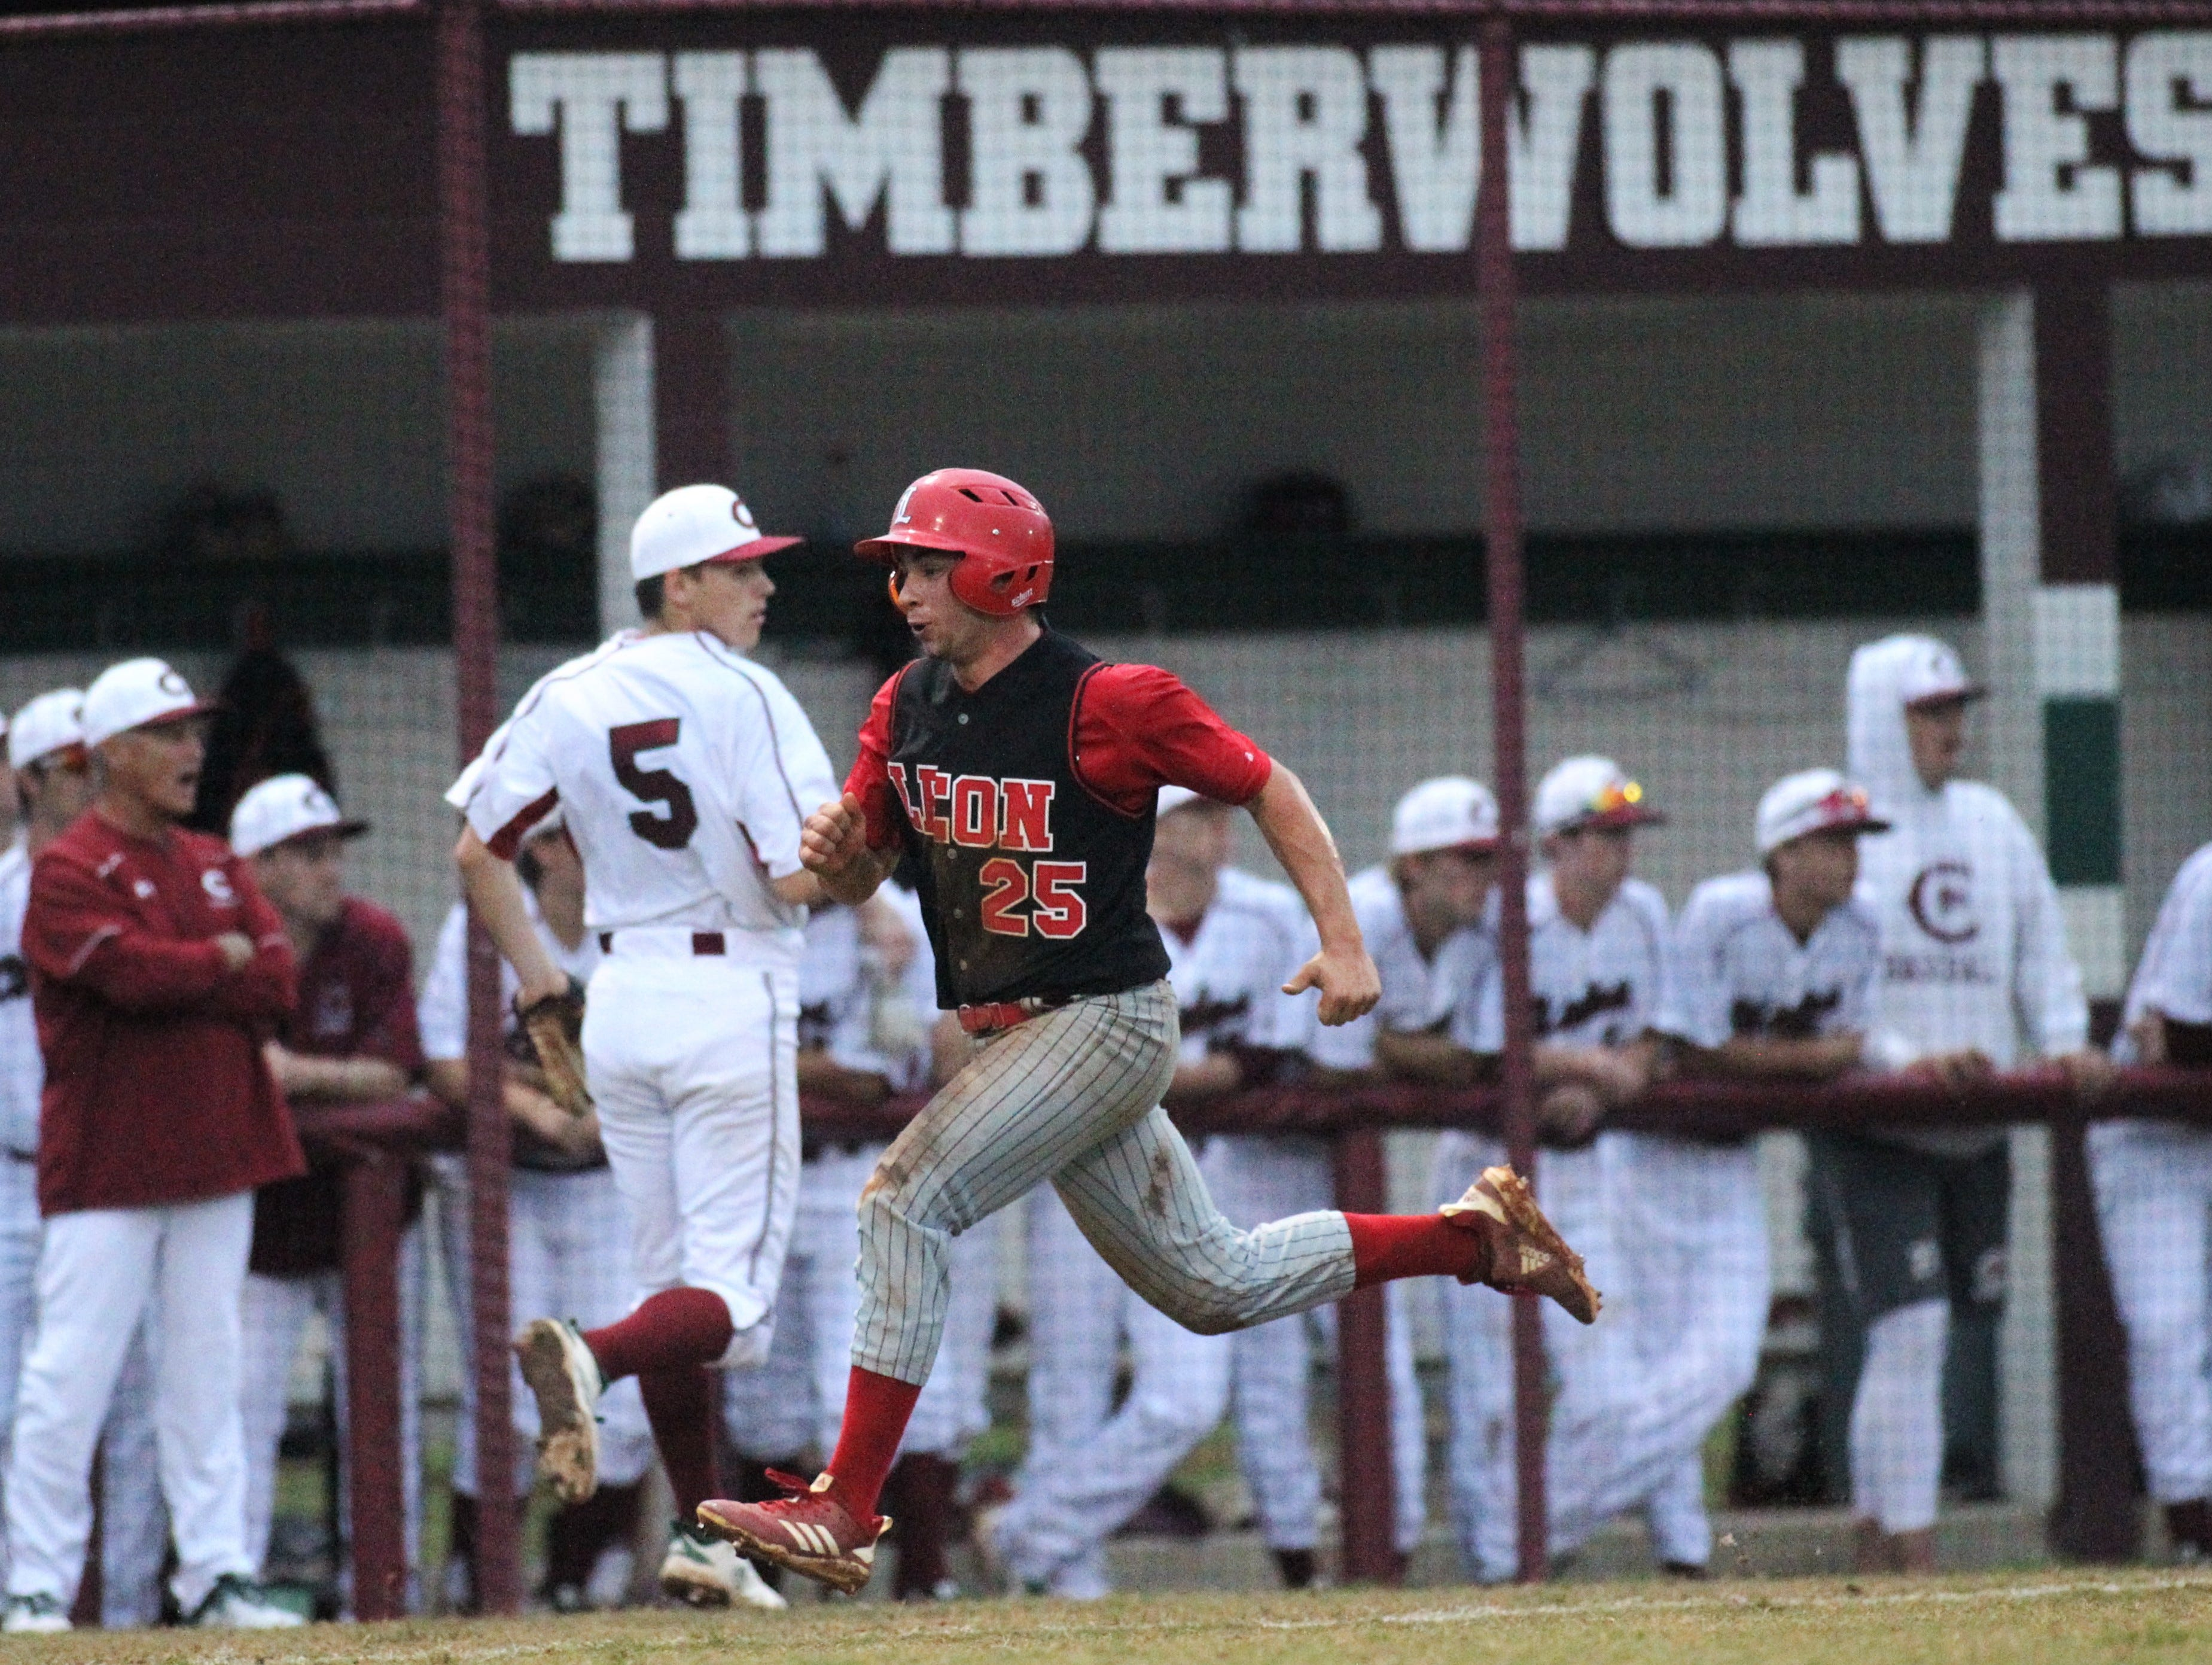 Leon senior Tyler Borges races home to score a run as Chiles won an 11-6 home game against Leon on Friday, April 5, 2019, to force a season split. The Lions won 3-0 earlier in the week.